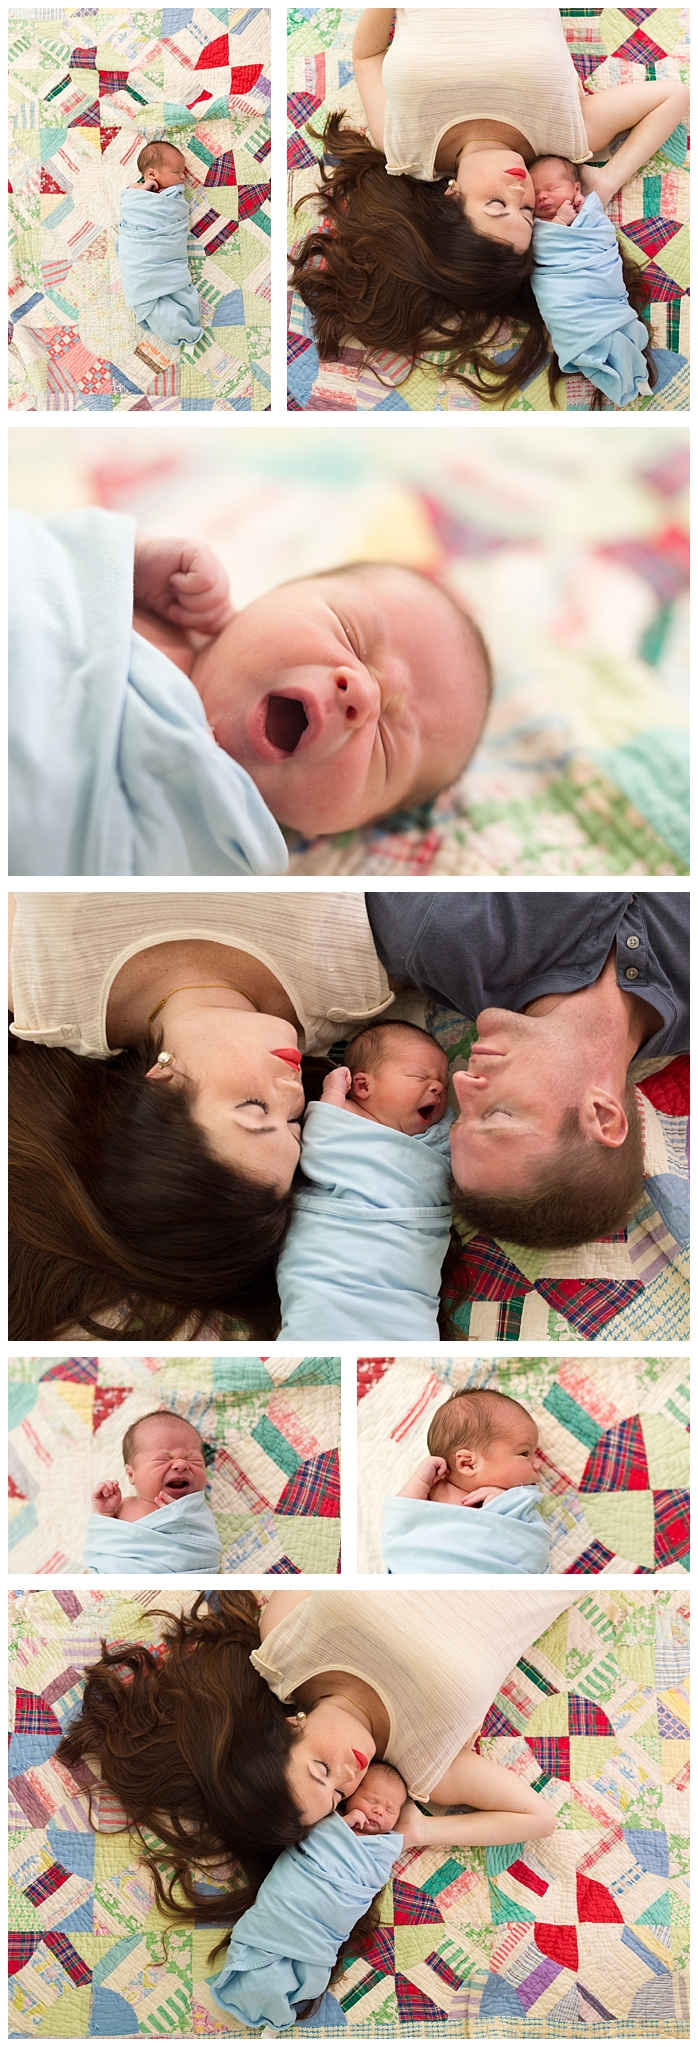 sweet family photos with newborn, parents, and vintage quilt